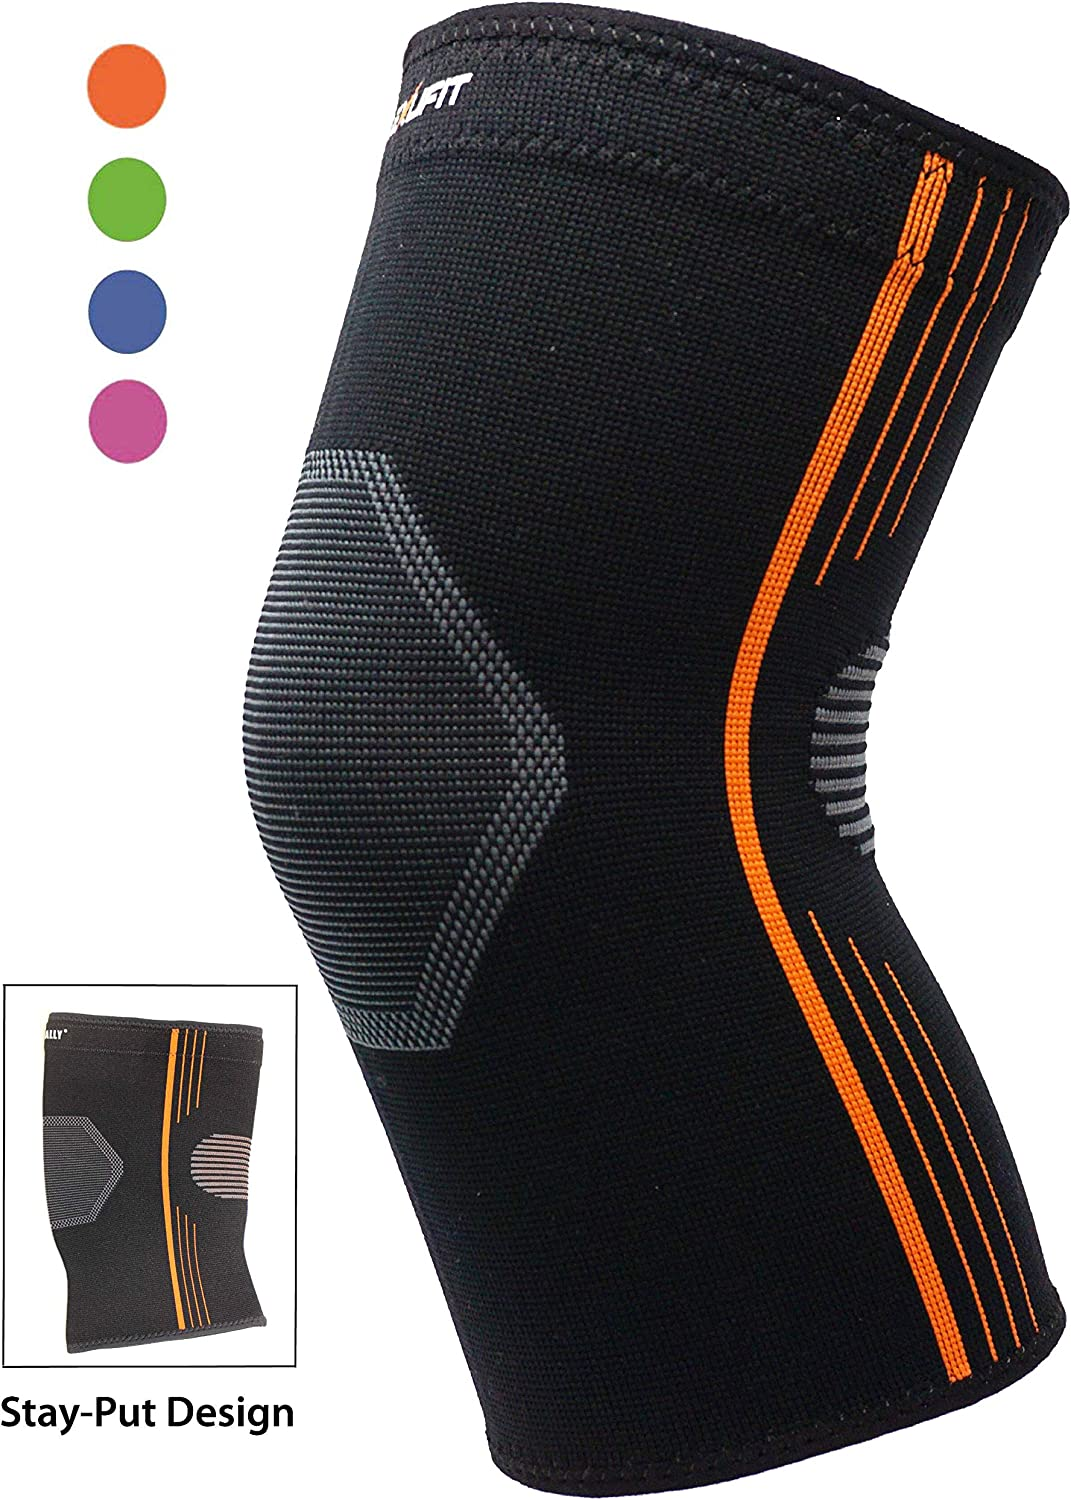 Premium Compression Knee Brace Sleeve for Hiking Stay-Put Breathable Knee Support for Running Basketball Crossfit Squats Lifting Arthritis Torn Meniscus - 4 Colors (Orange, Medium Single)